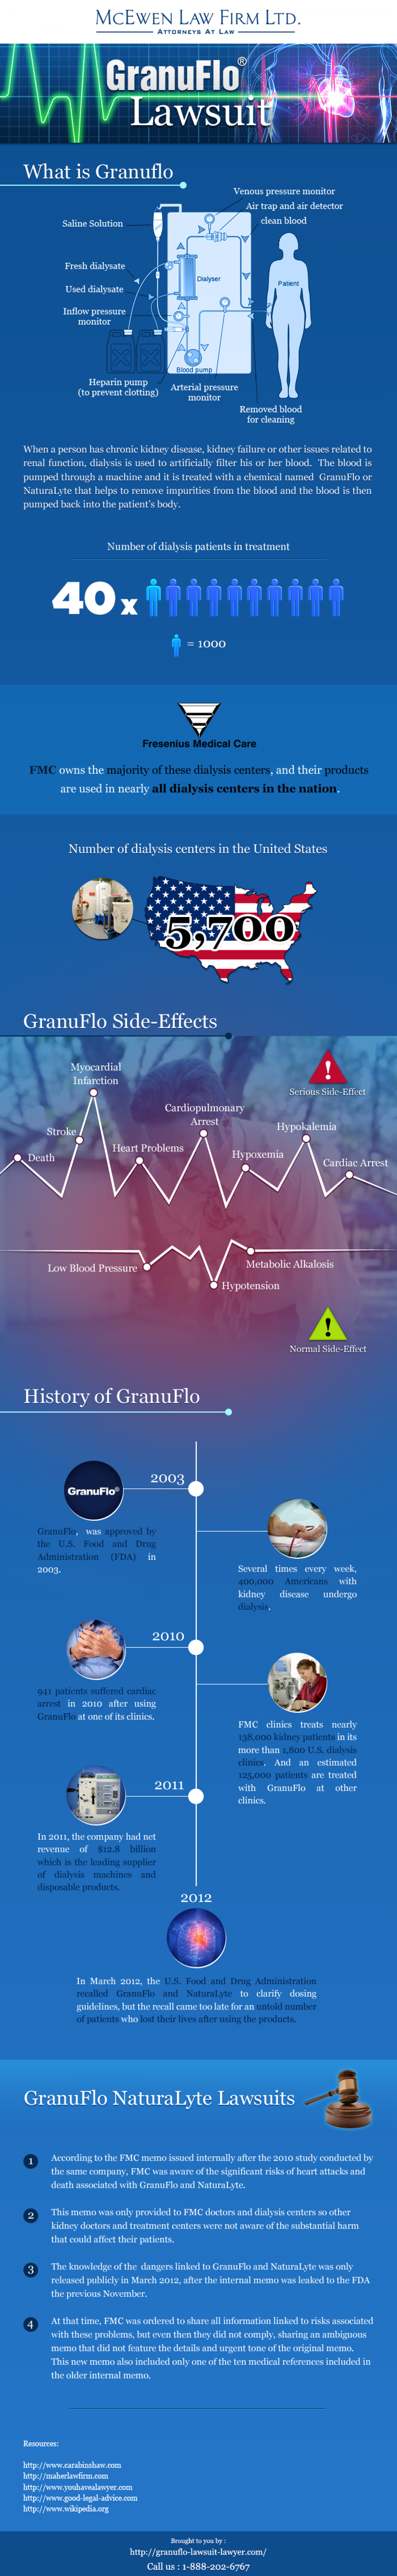 Granuflo Lawsuit Lawyer Infographic